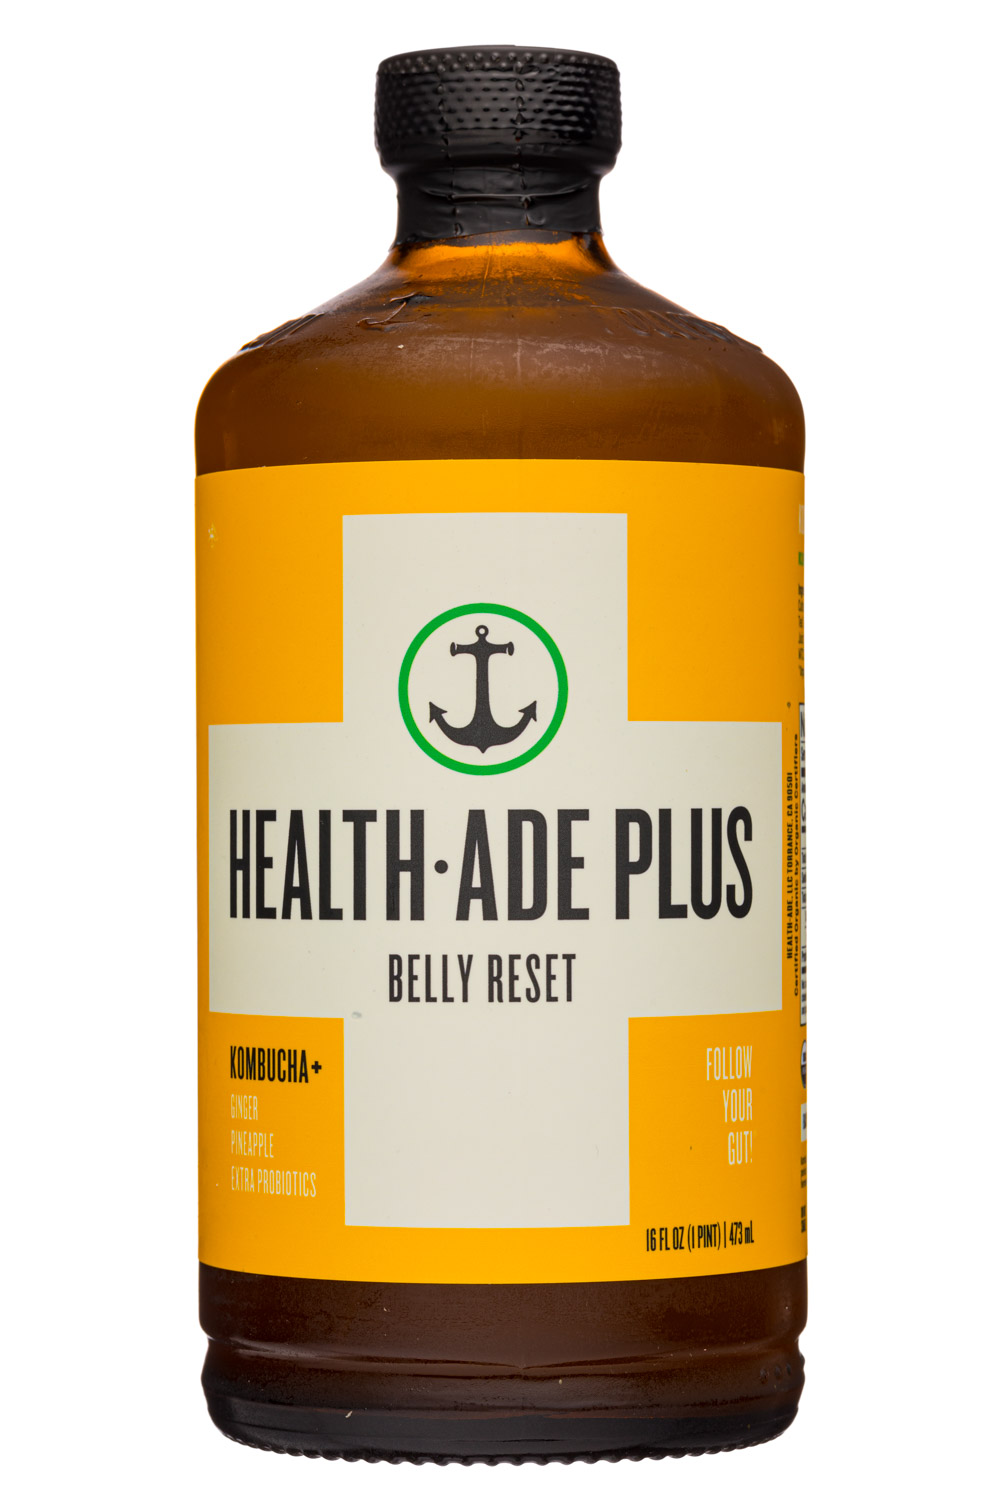 Plus: Belly Reset